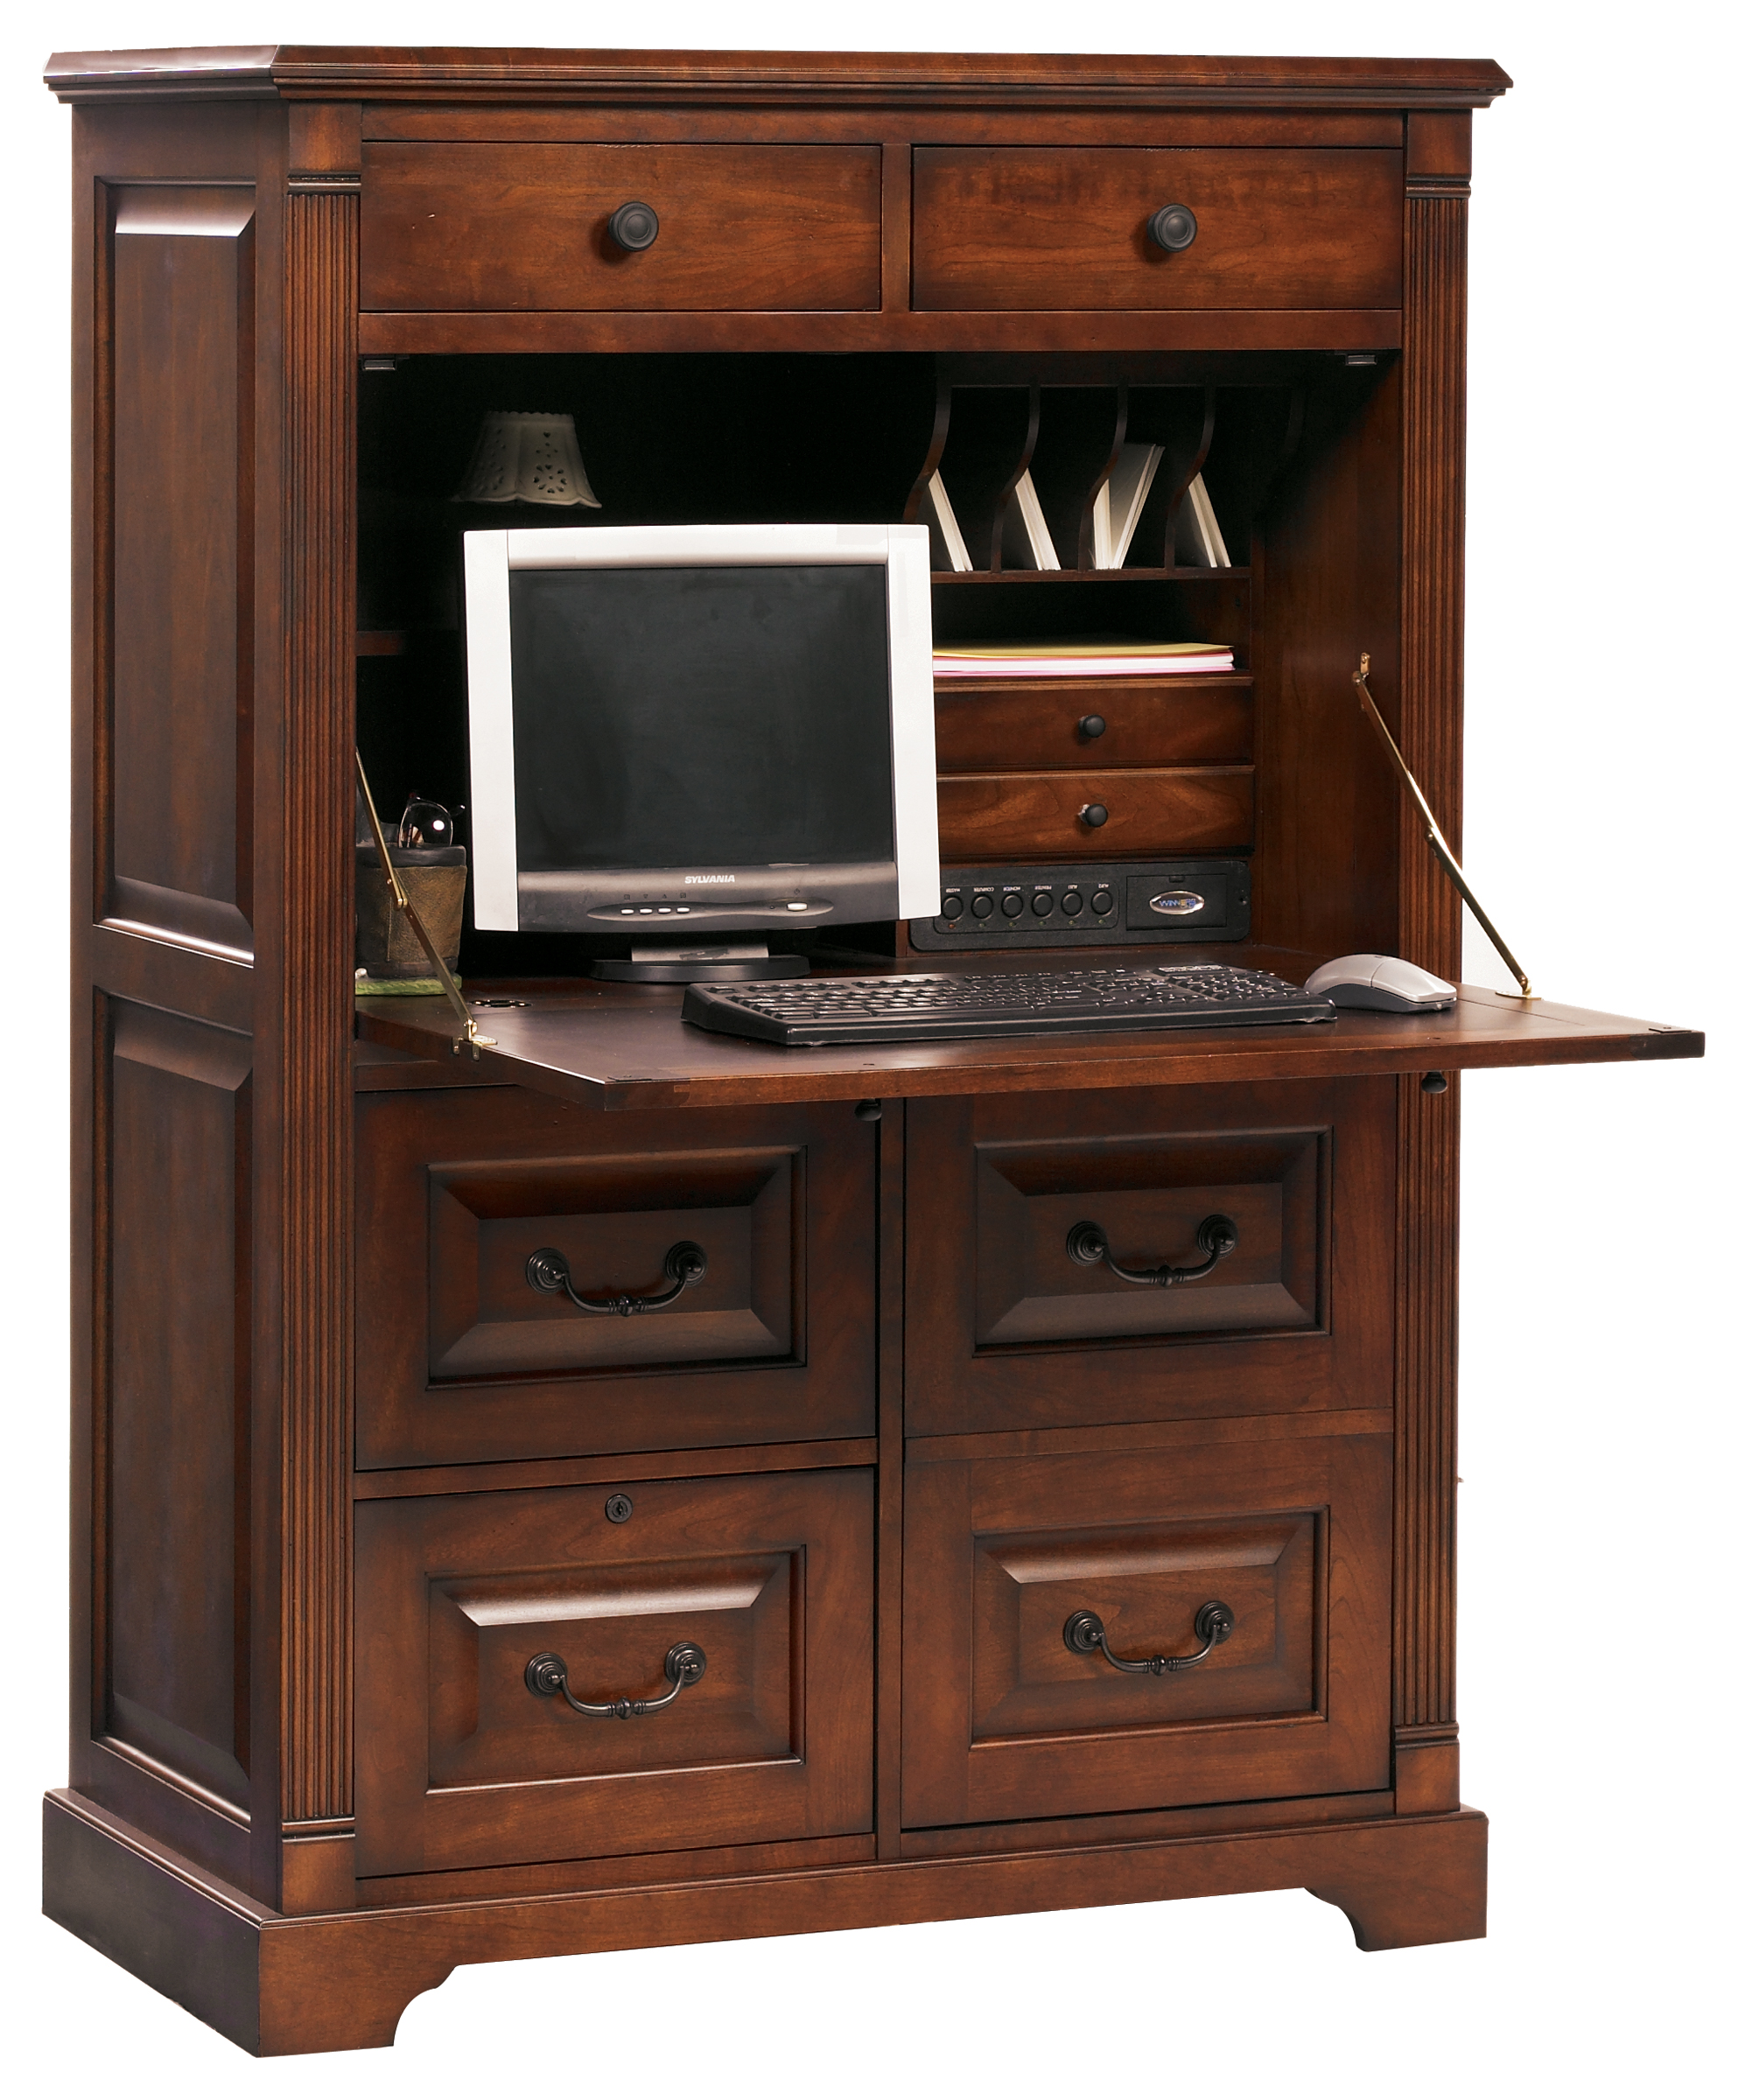 Closed Computer Armoire | Winners Only Country Cherry Collection